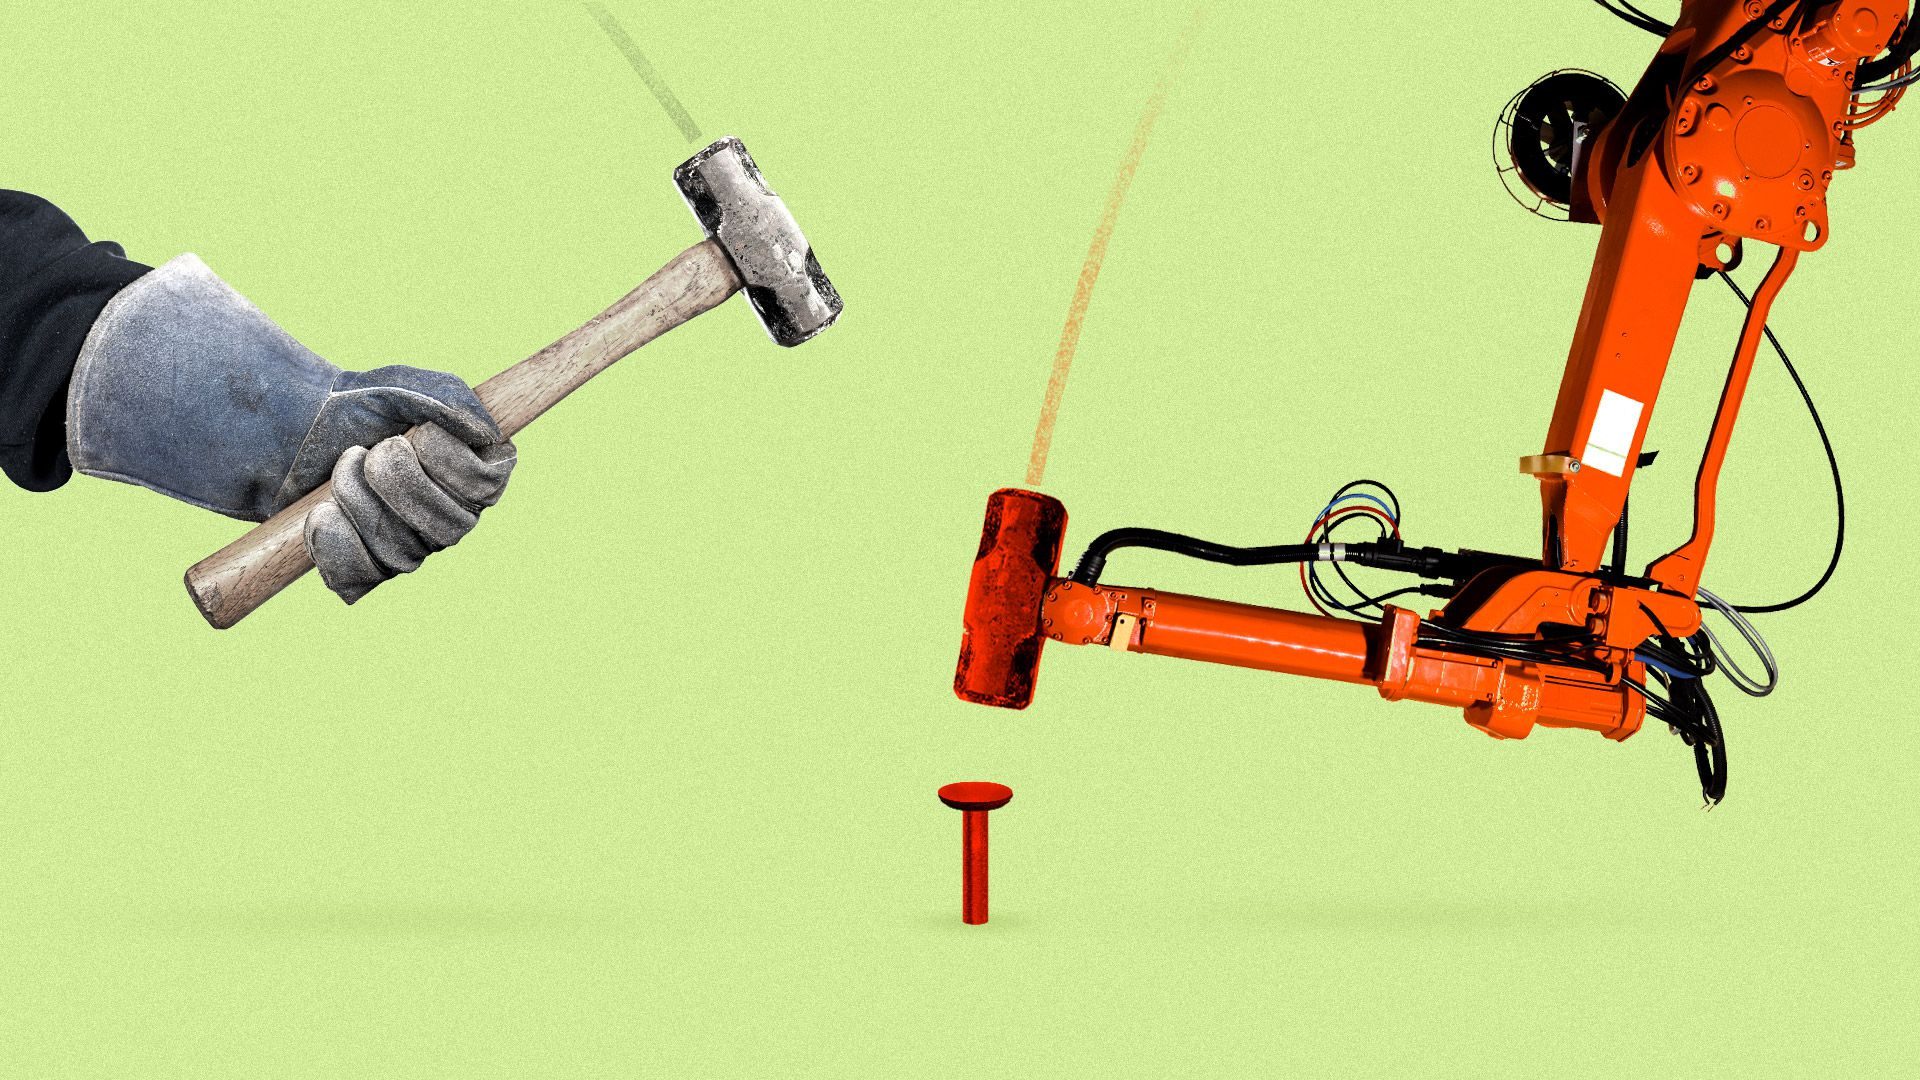 Shock report: Machines will do half our labor in less than 8 years